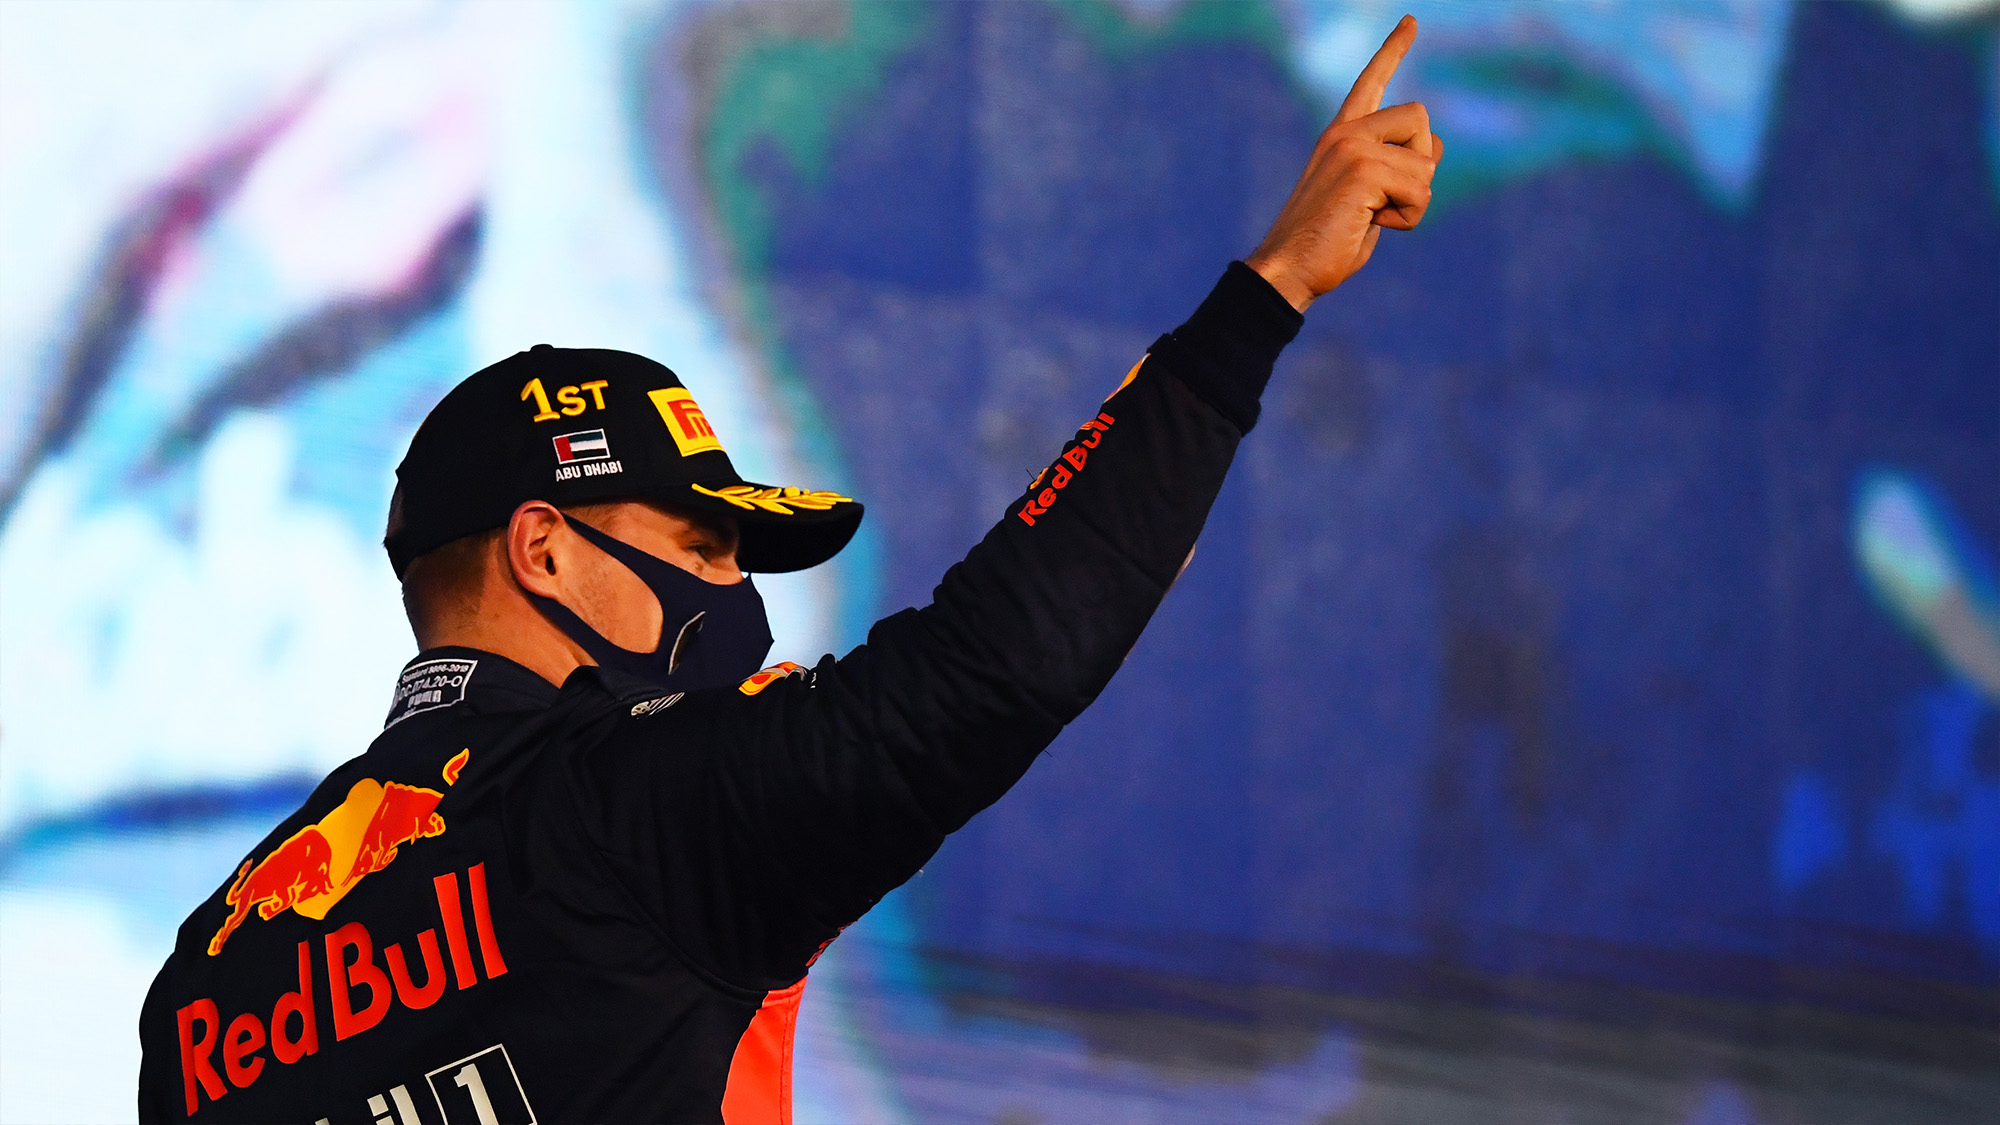 Max Verstappen salutes as the winner of the 2020 Abu Dhabi Grand Prix